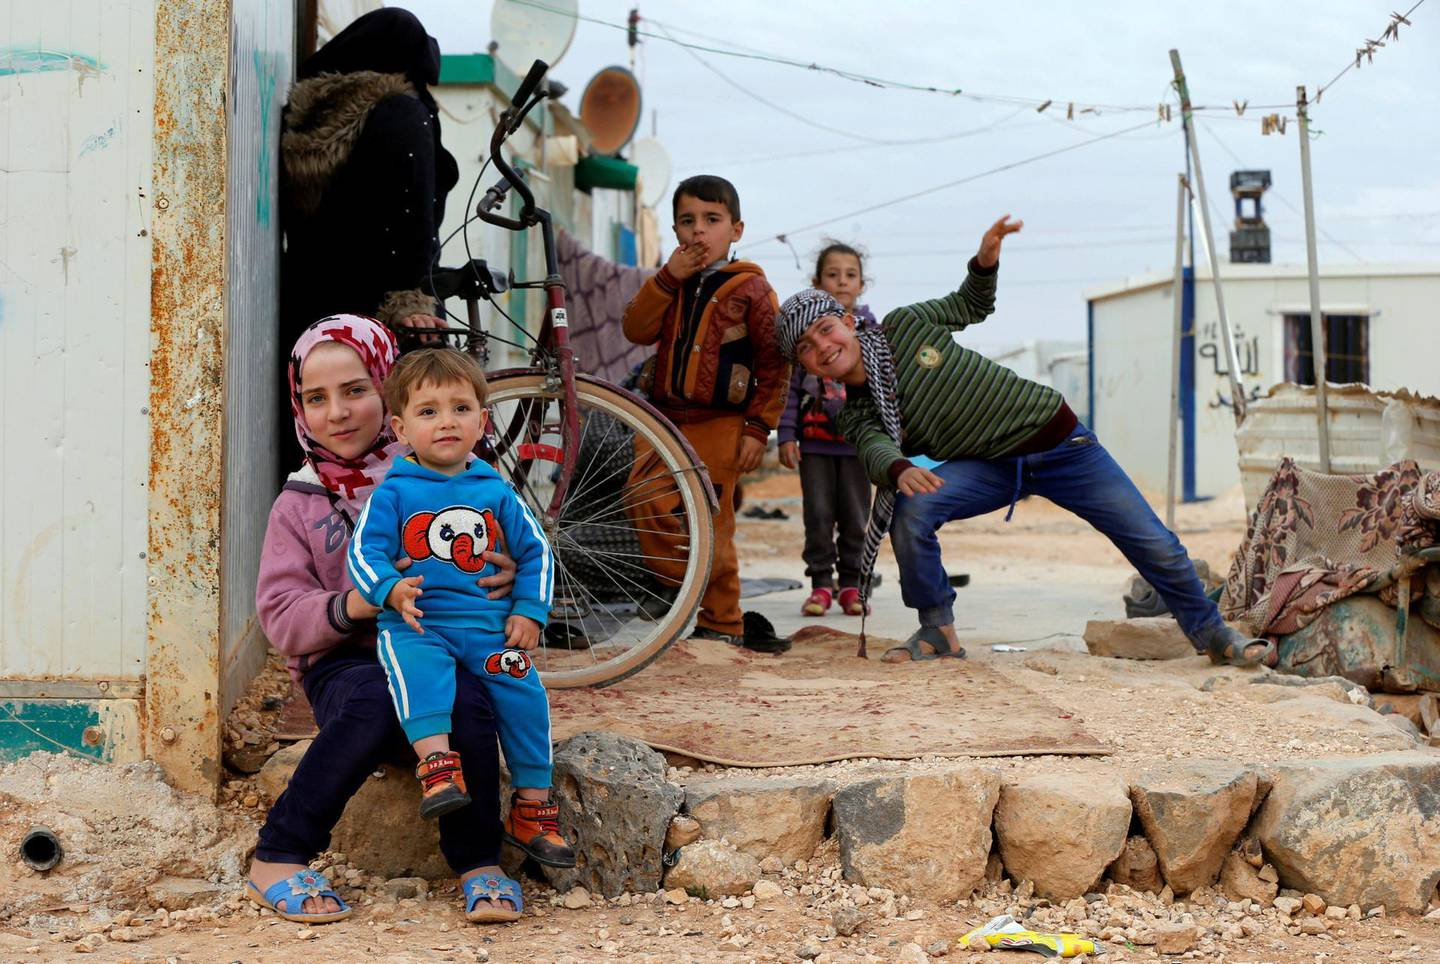 Syrian refugee children pose as they play at Al Zaatari refugee camp, in the Jordanian city of Mafraq, near the border with Syria, February 12, 2018. REUTERS/Muhammad Hamed